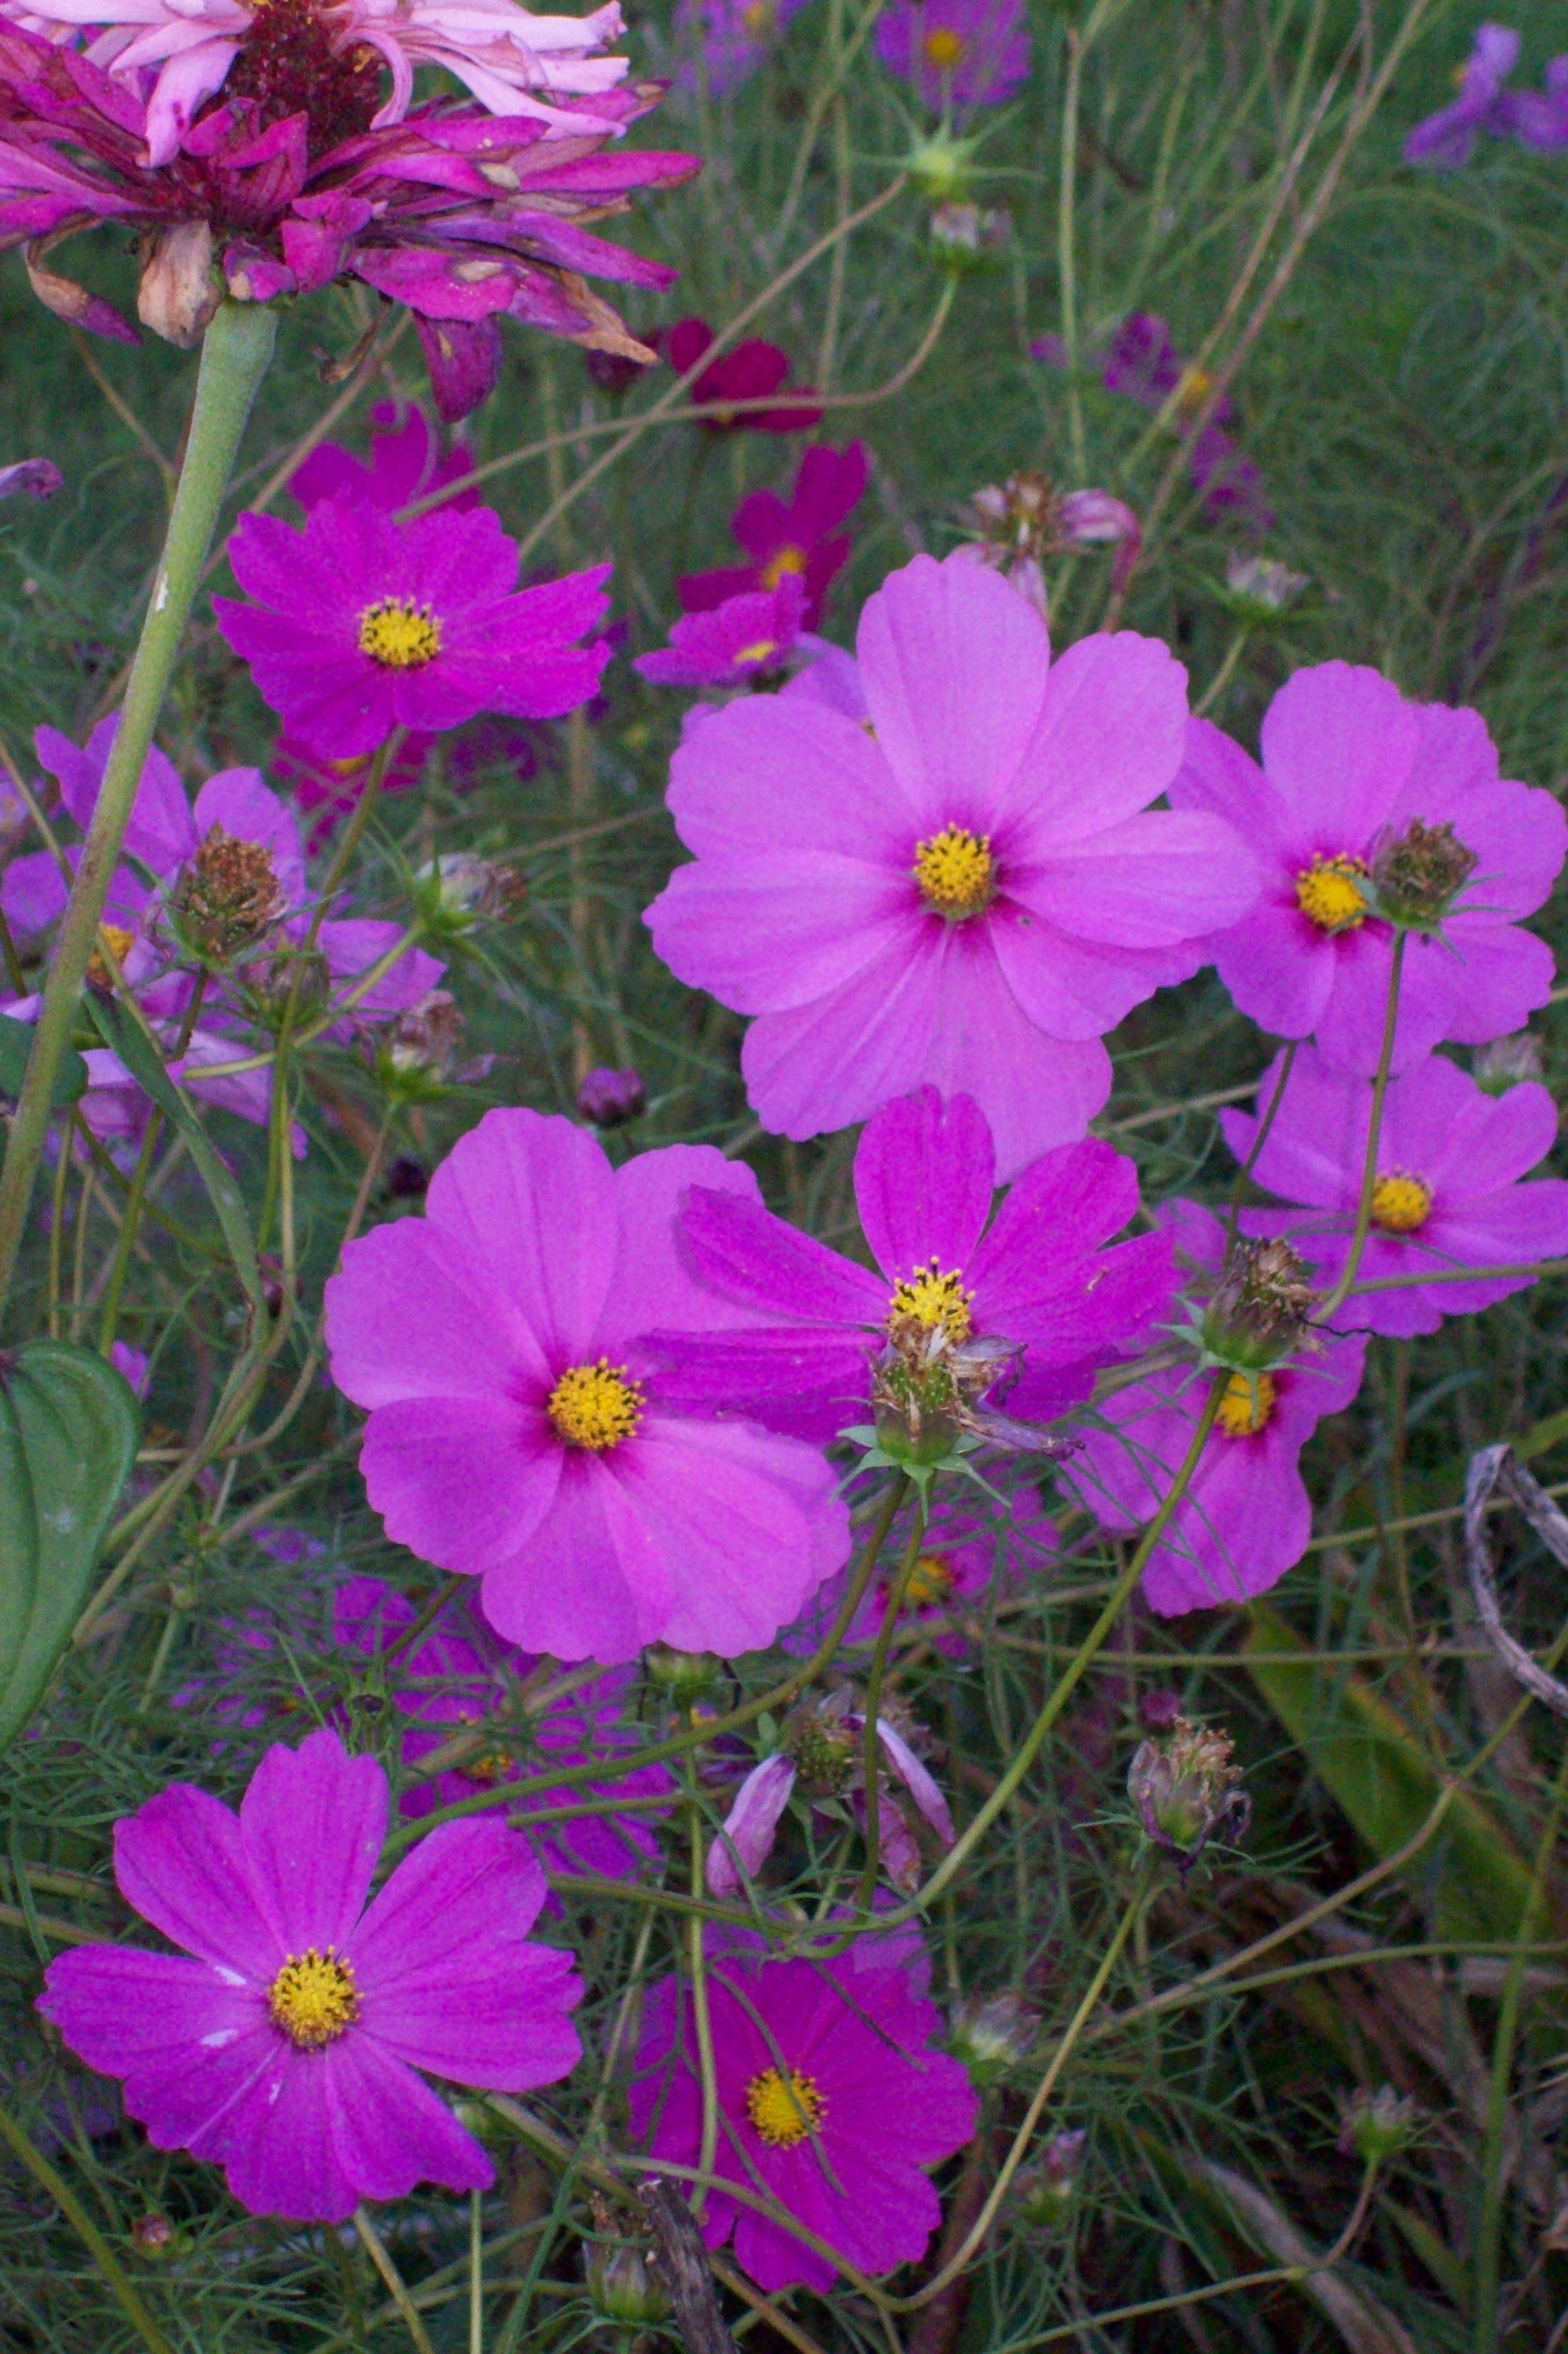 Cosmos Another Airy Plant That Dances In The Breeze Liked It In My Beds Easy To Grown From Seed And Great F Cosmos Flowers Love Flowers Beautiful Flowers